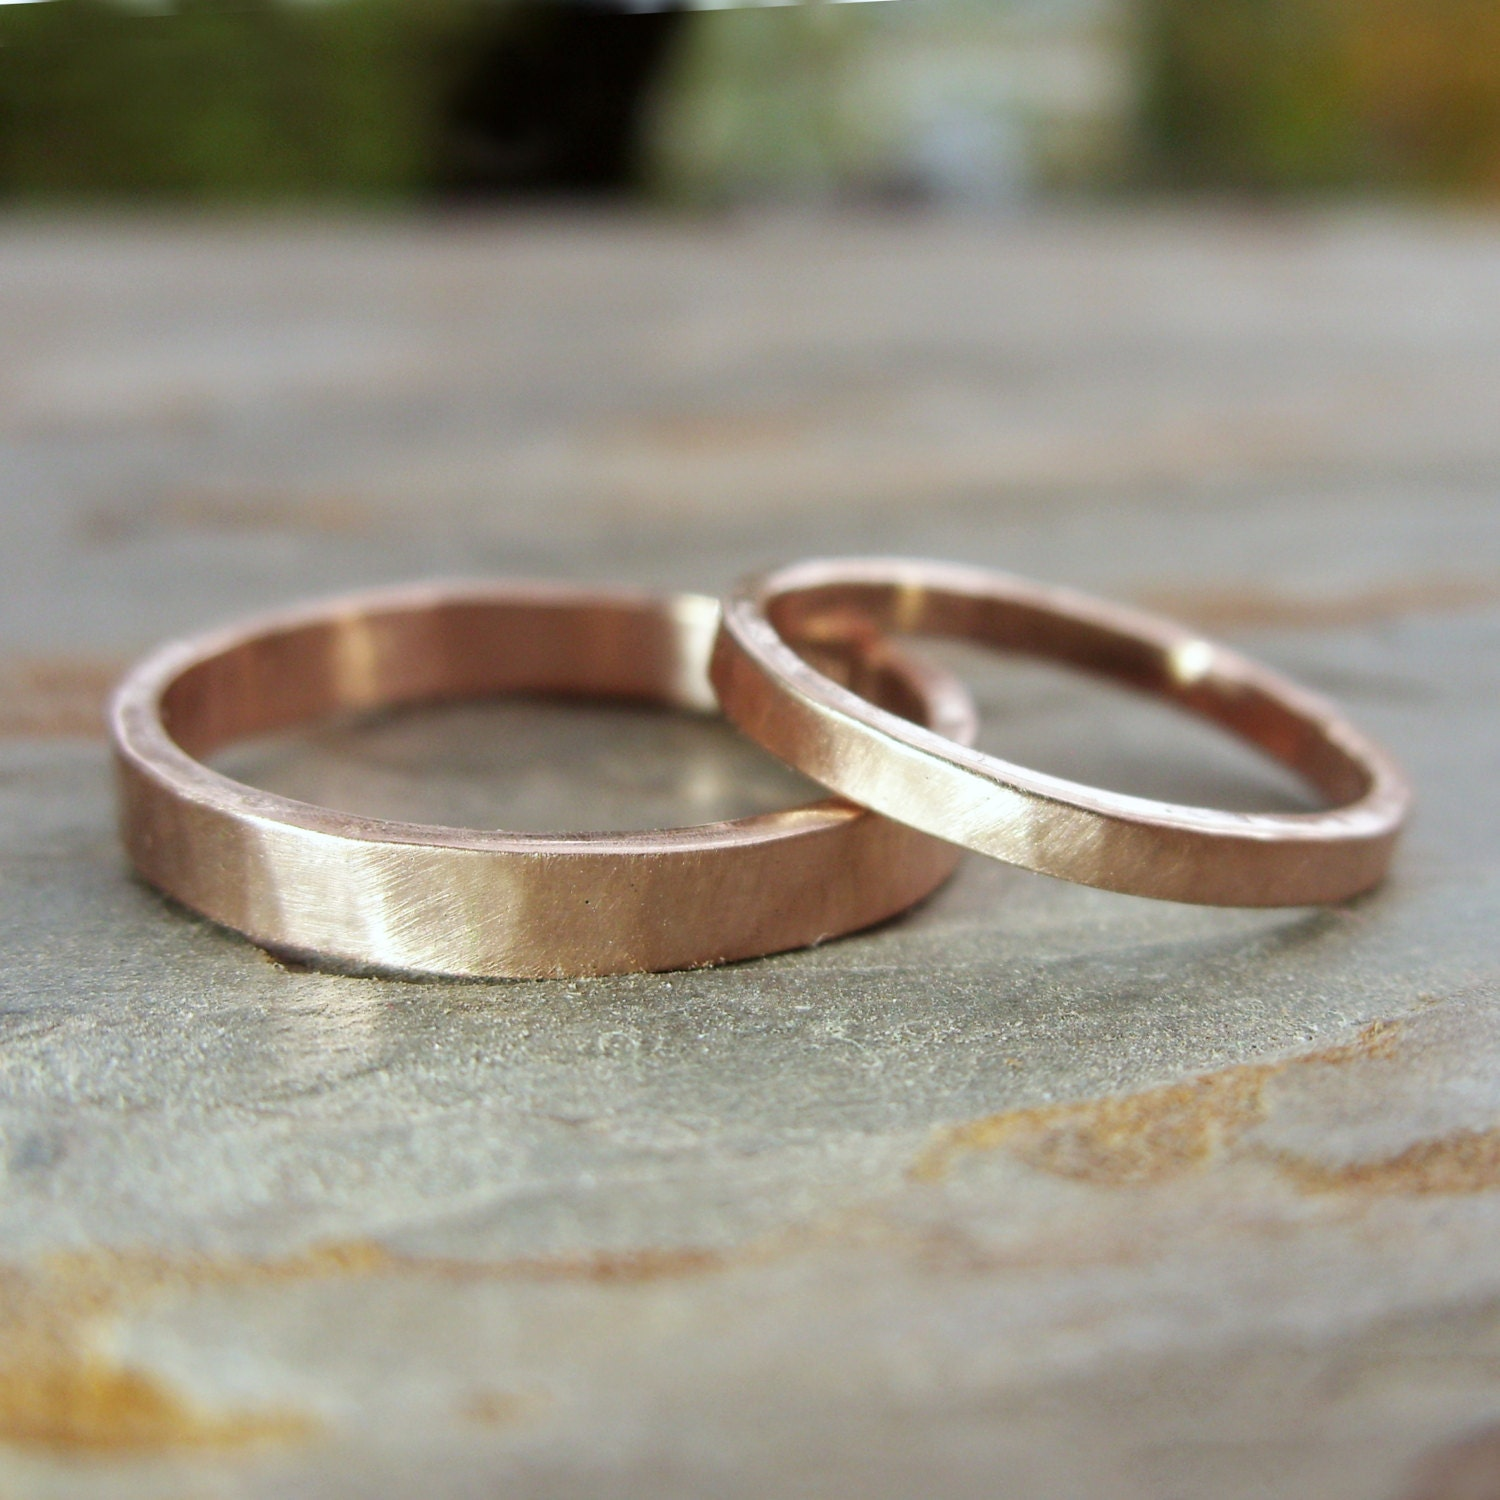 14k Yellow Gold High Polished 2mm Traditional Milgrain: Hammered Matching Wedding Band Set In Solid 14k Yellow Or Rose